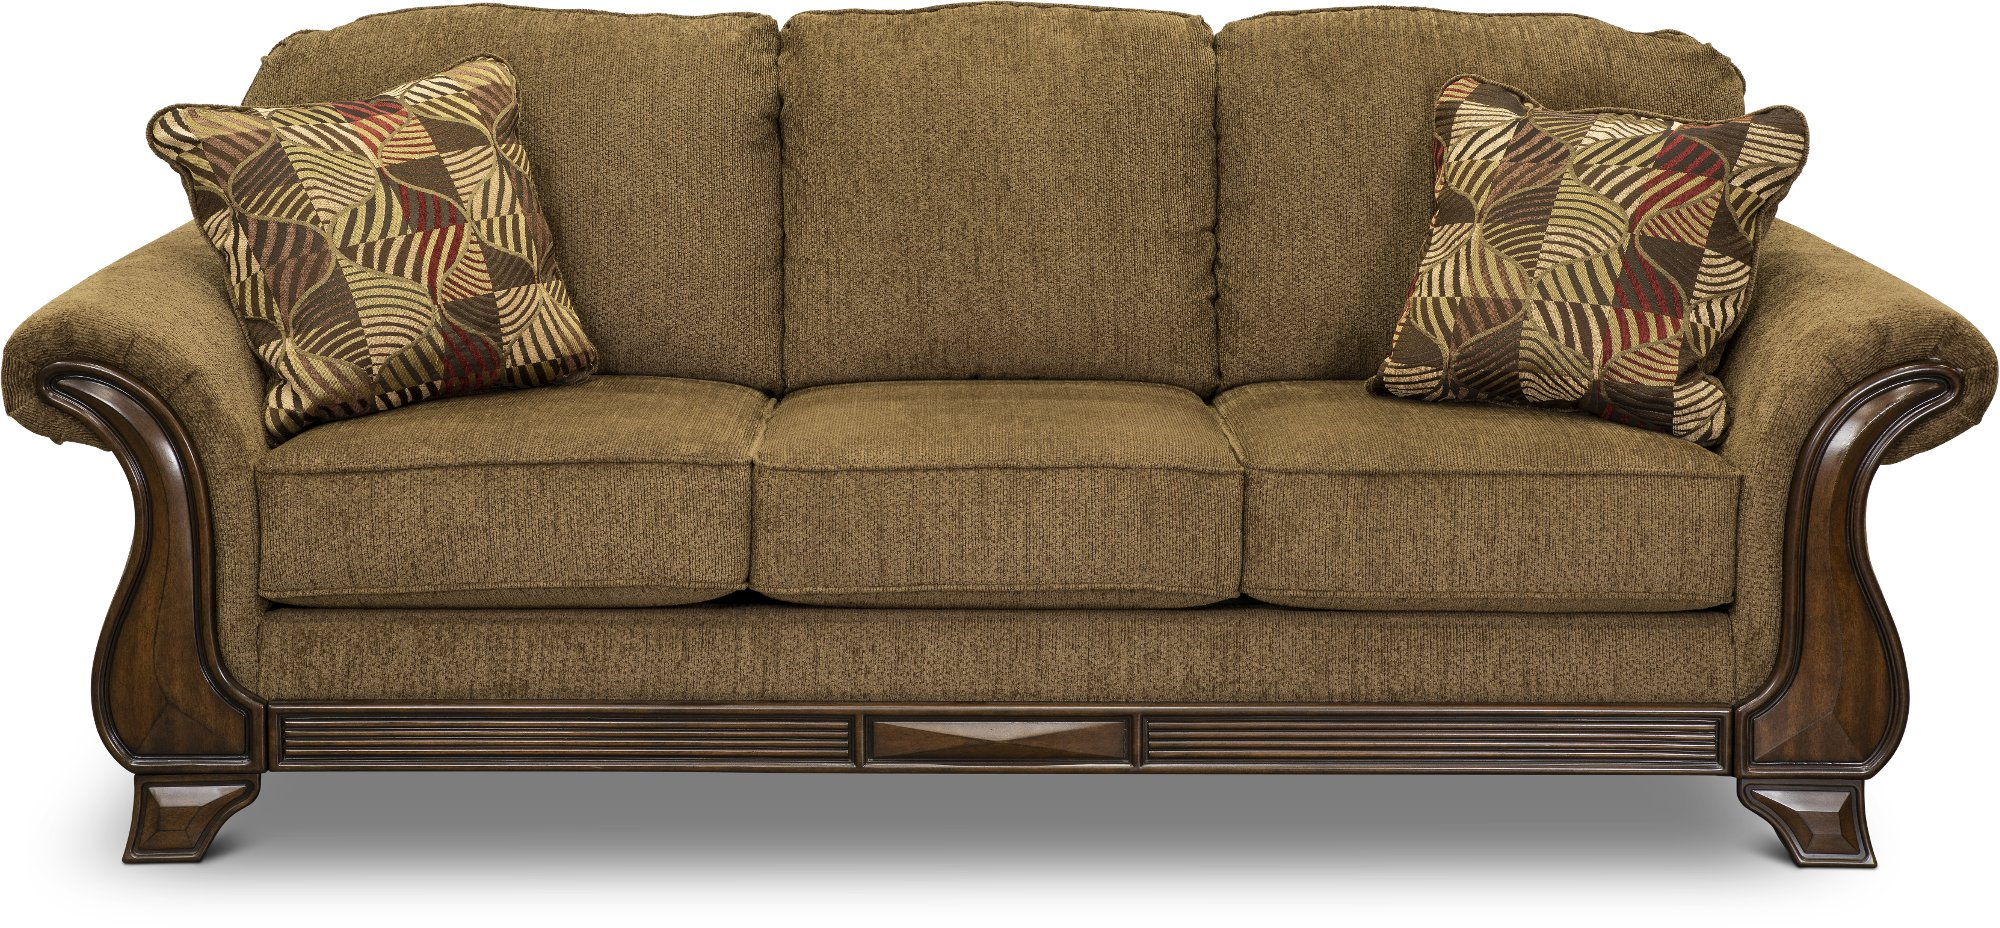 Casual Traditional Mocha Brown Sofa Loveseat Montgomery Rc Willey Furniture Store